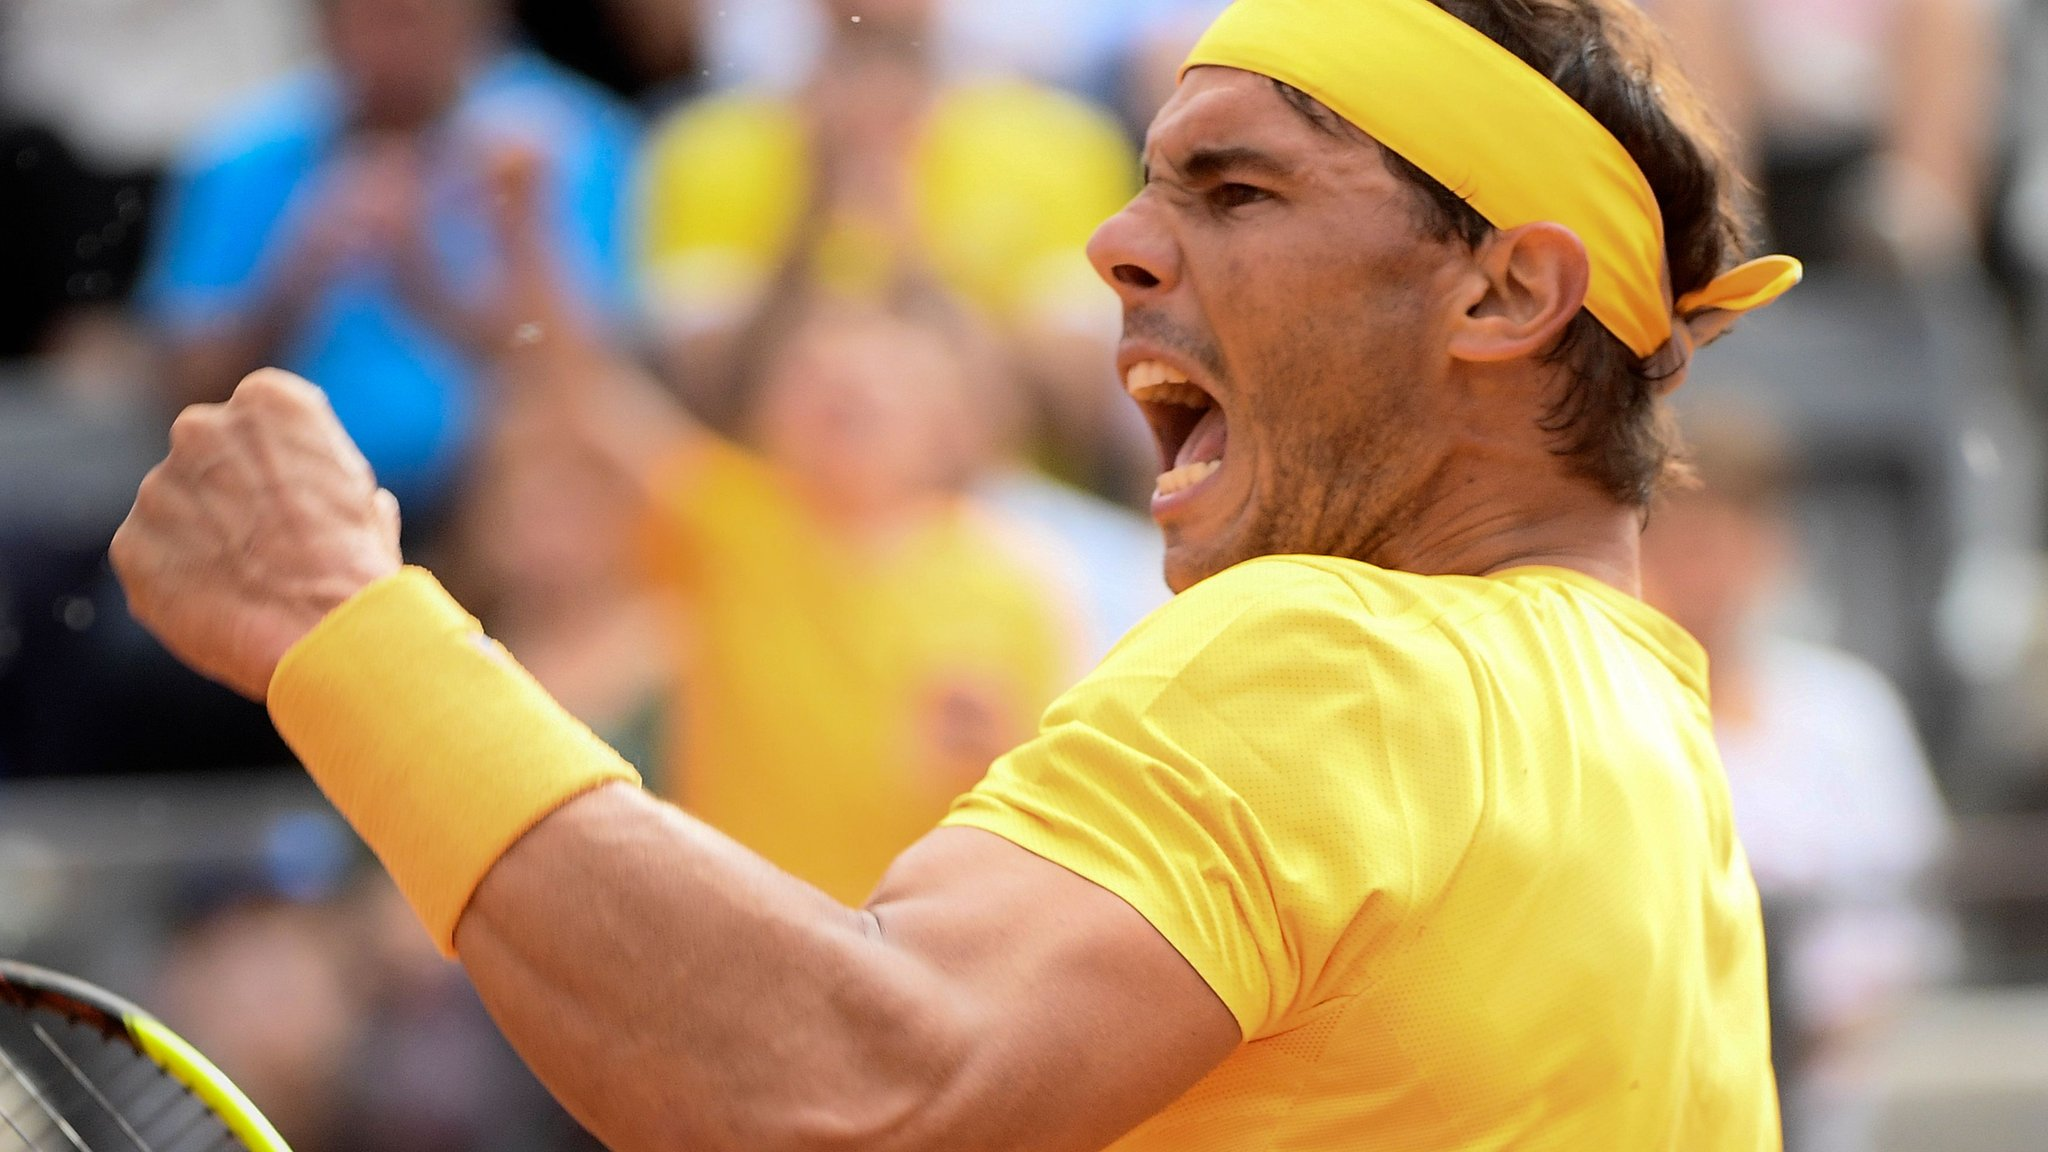 Italian Open: Rafael Nadal beats Alexander Zverev to win Rome title for an eighth time